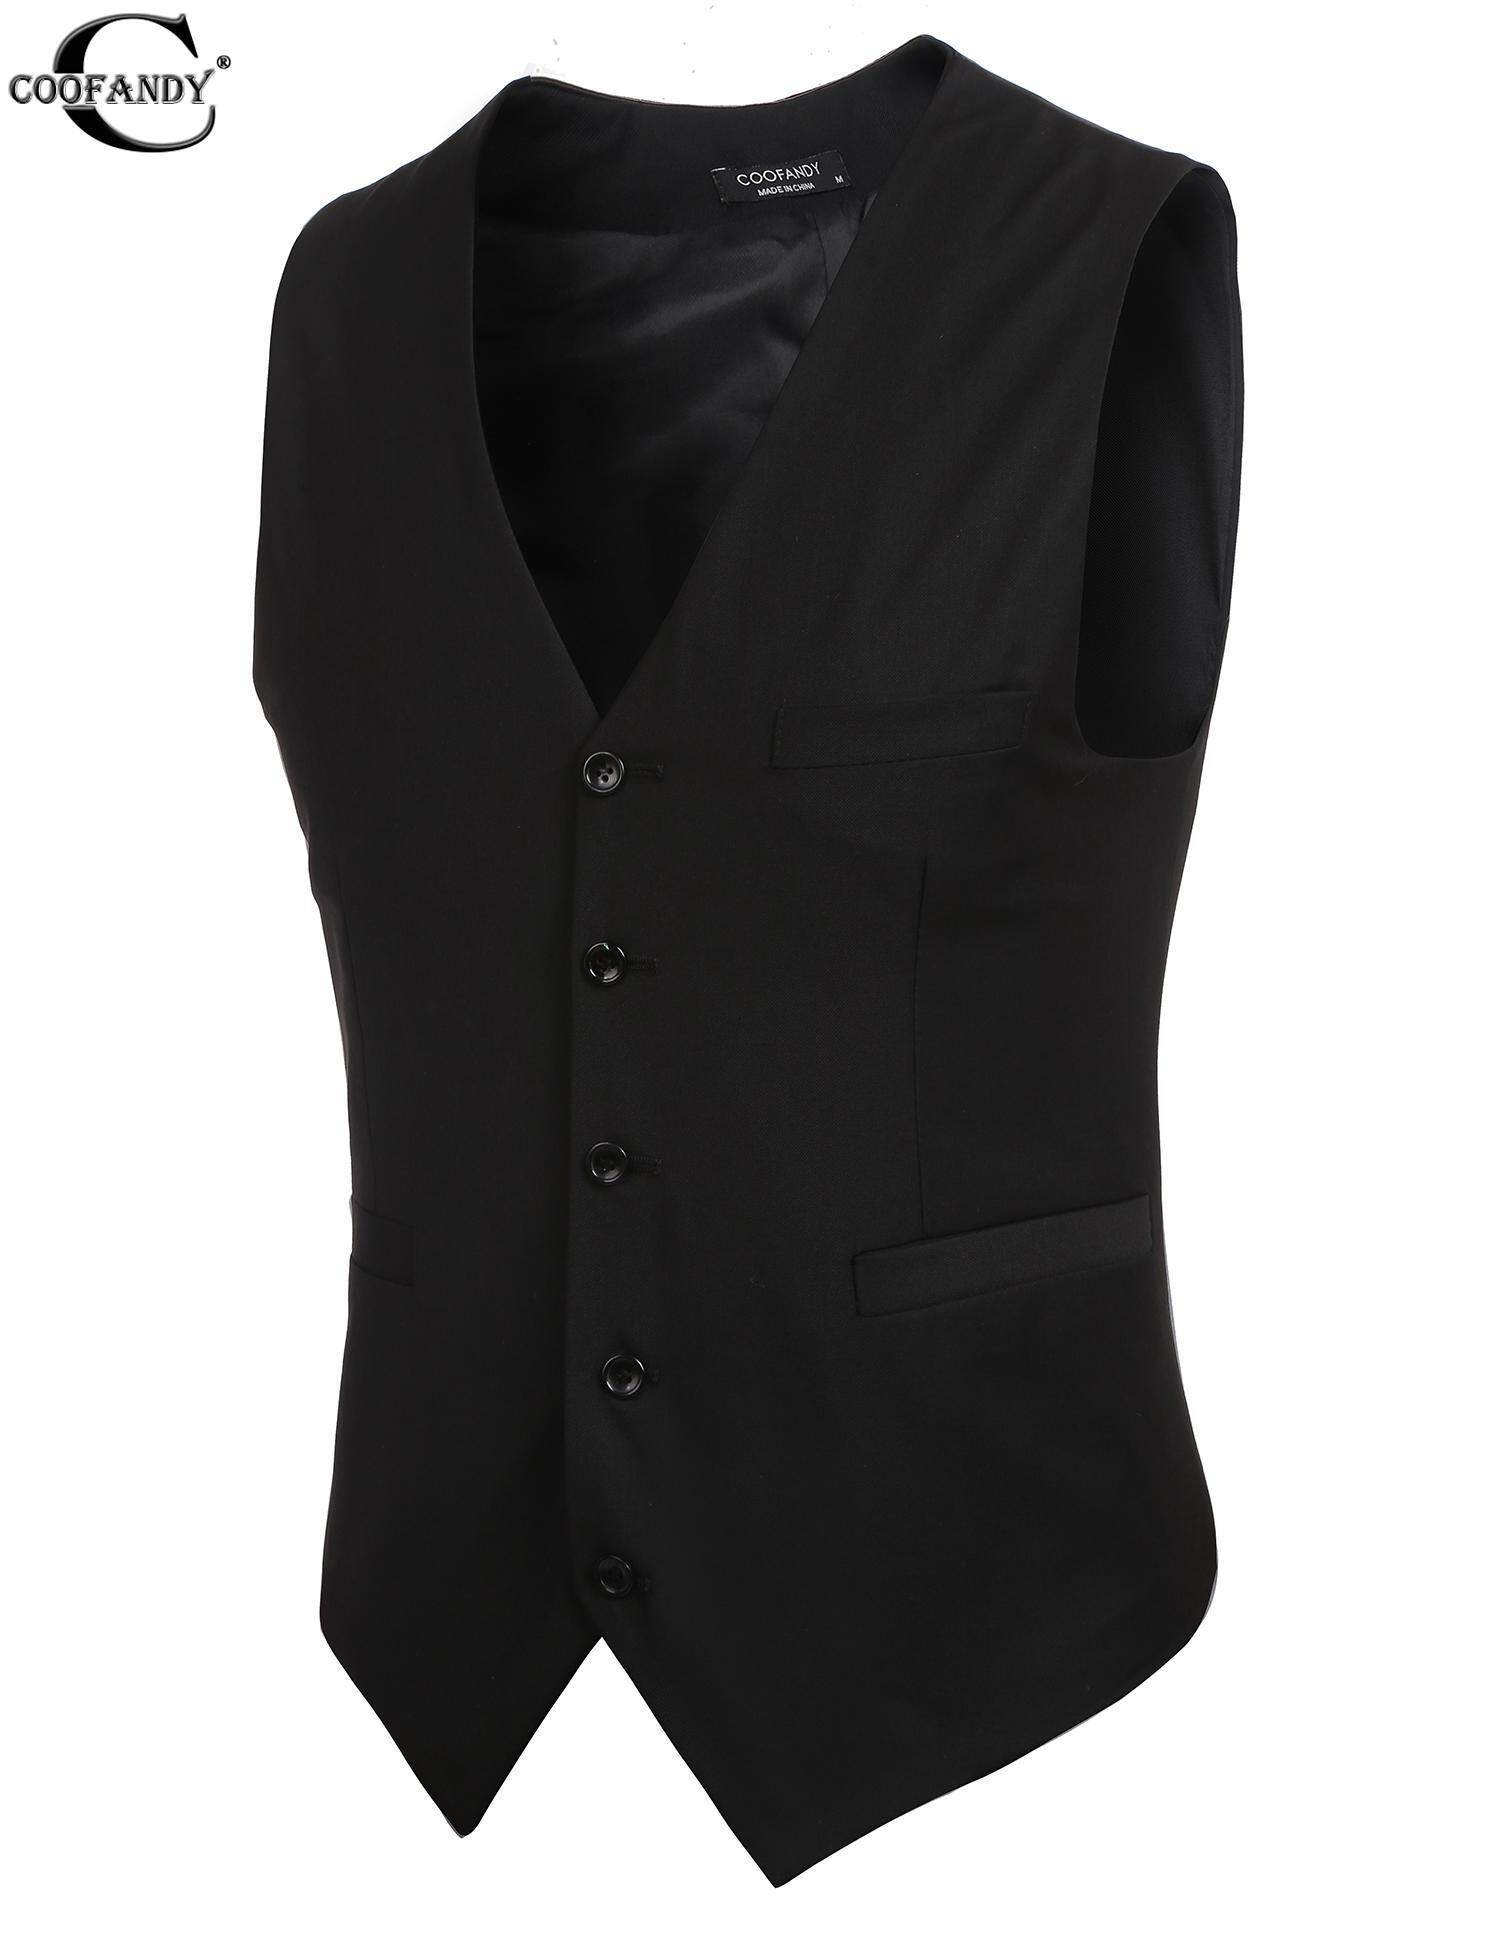 0bb4f9c6 COOFANDY Men 5 Buttons V-Neck Sleeveless Slim Fit Formal Business Wasitcoat  Vests